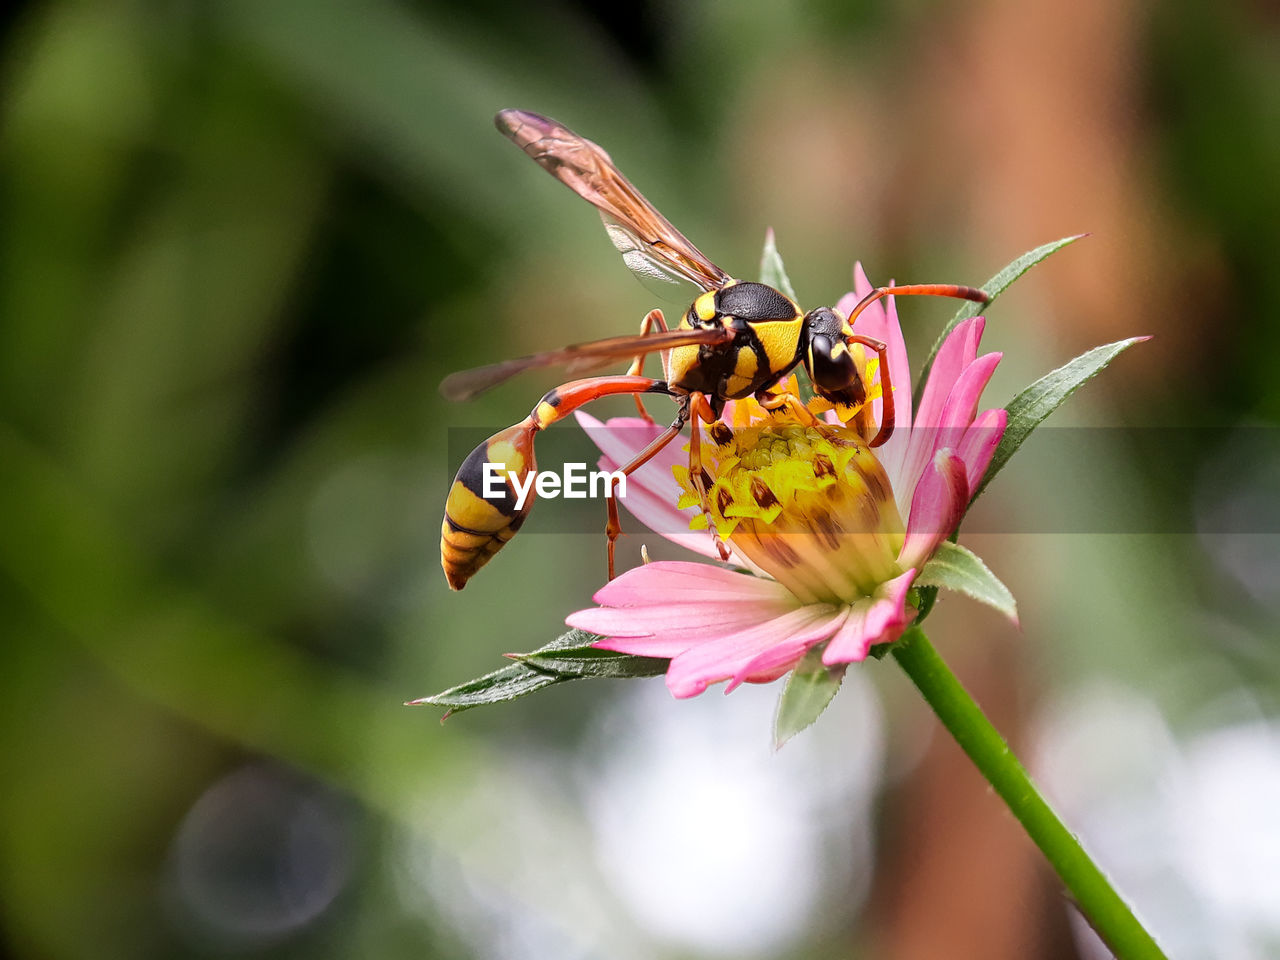 invertebrate, insect, flowering plant, animal themes, flower, animal wildlife, animals in the wild, animal, one animal, beauty in nature, fragility, plant, vulnerability, petal, freshness, close-up, flower head, growth, pollination, focus on foreground, no people, animal wing, pollen, butterfly - insect